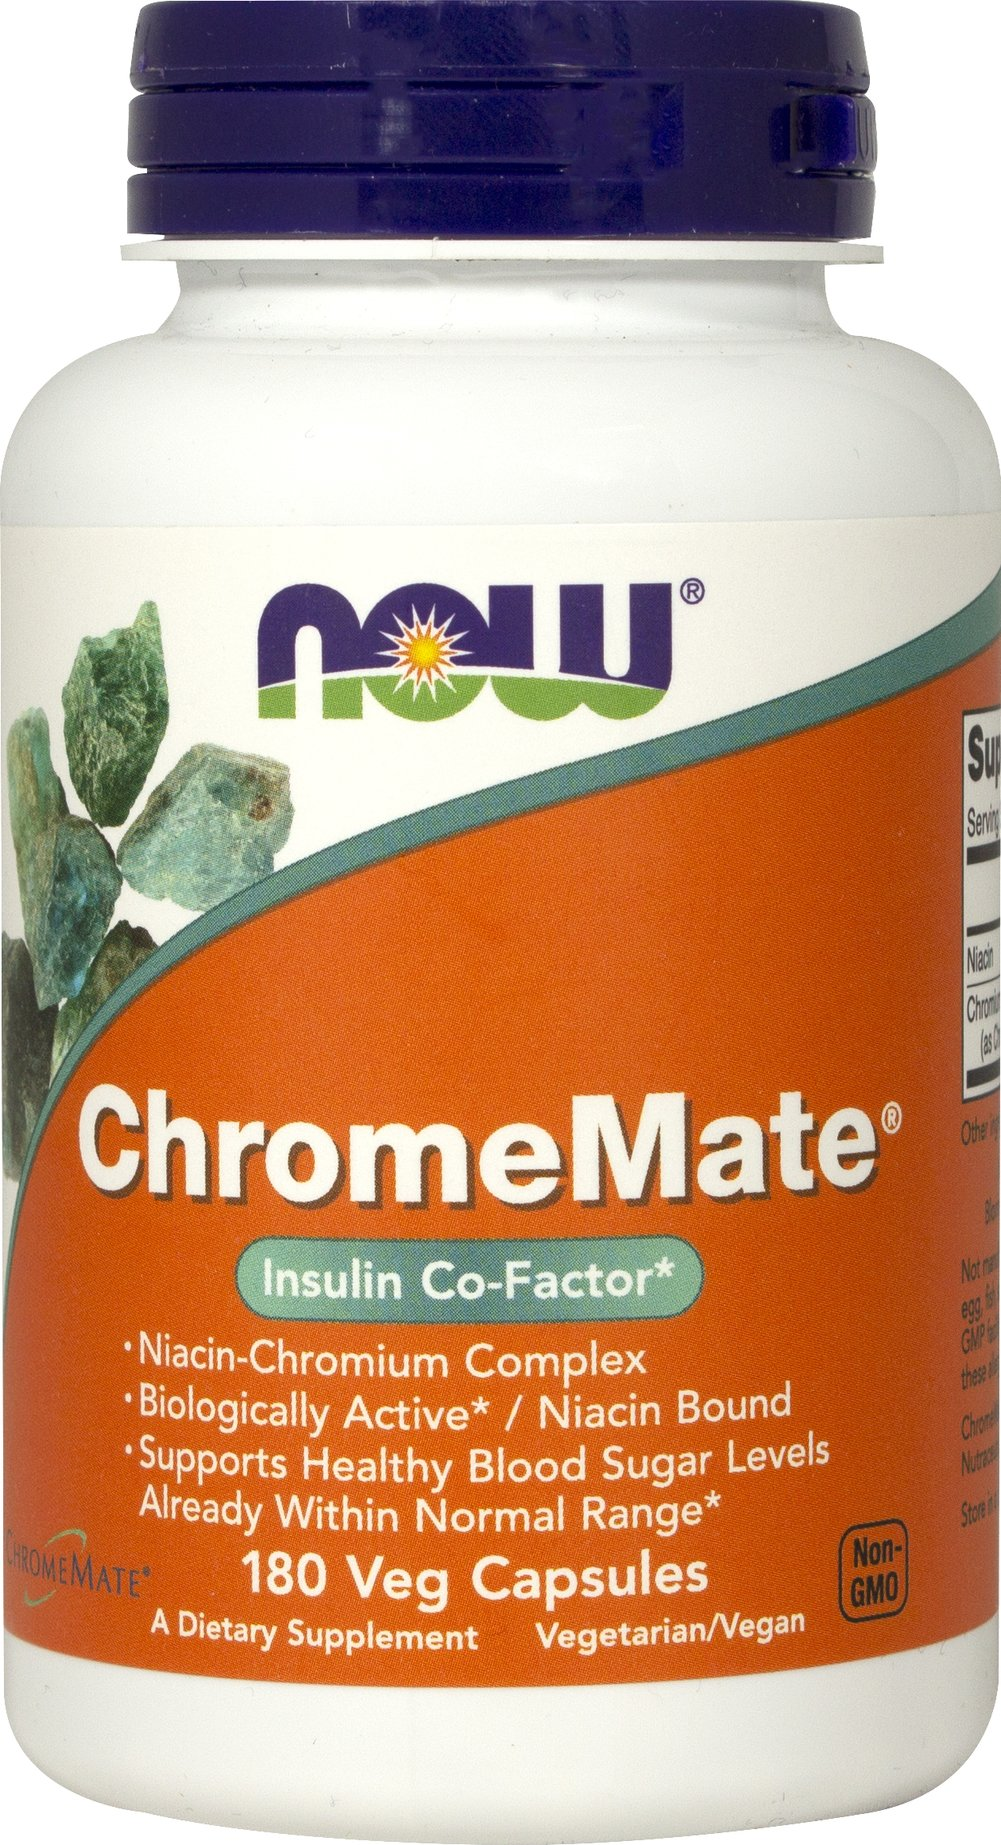 Chromemate® Chromium Polynicotinate 200 mcg <p><strong>From the Manufacturer's Label:</strong></p><p>Patented Chromium Complex</p><p>Biologically Active/Niacin Bound</p><p>Supports Healthy Blood Sugar Levels**</p><p>NOW® ChromeMate® contains a unique patented niacin-bound chromium complex.  Chromium is an essential trace mineral that works to support healthy blood glucose levels already within a normal range and